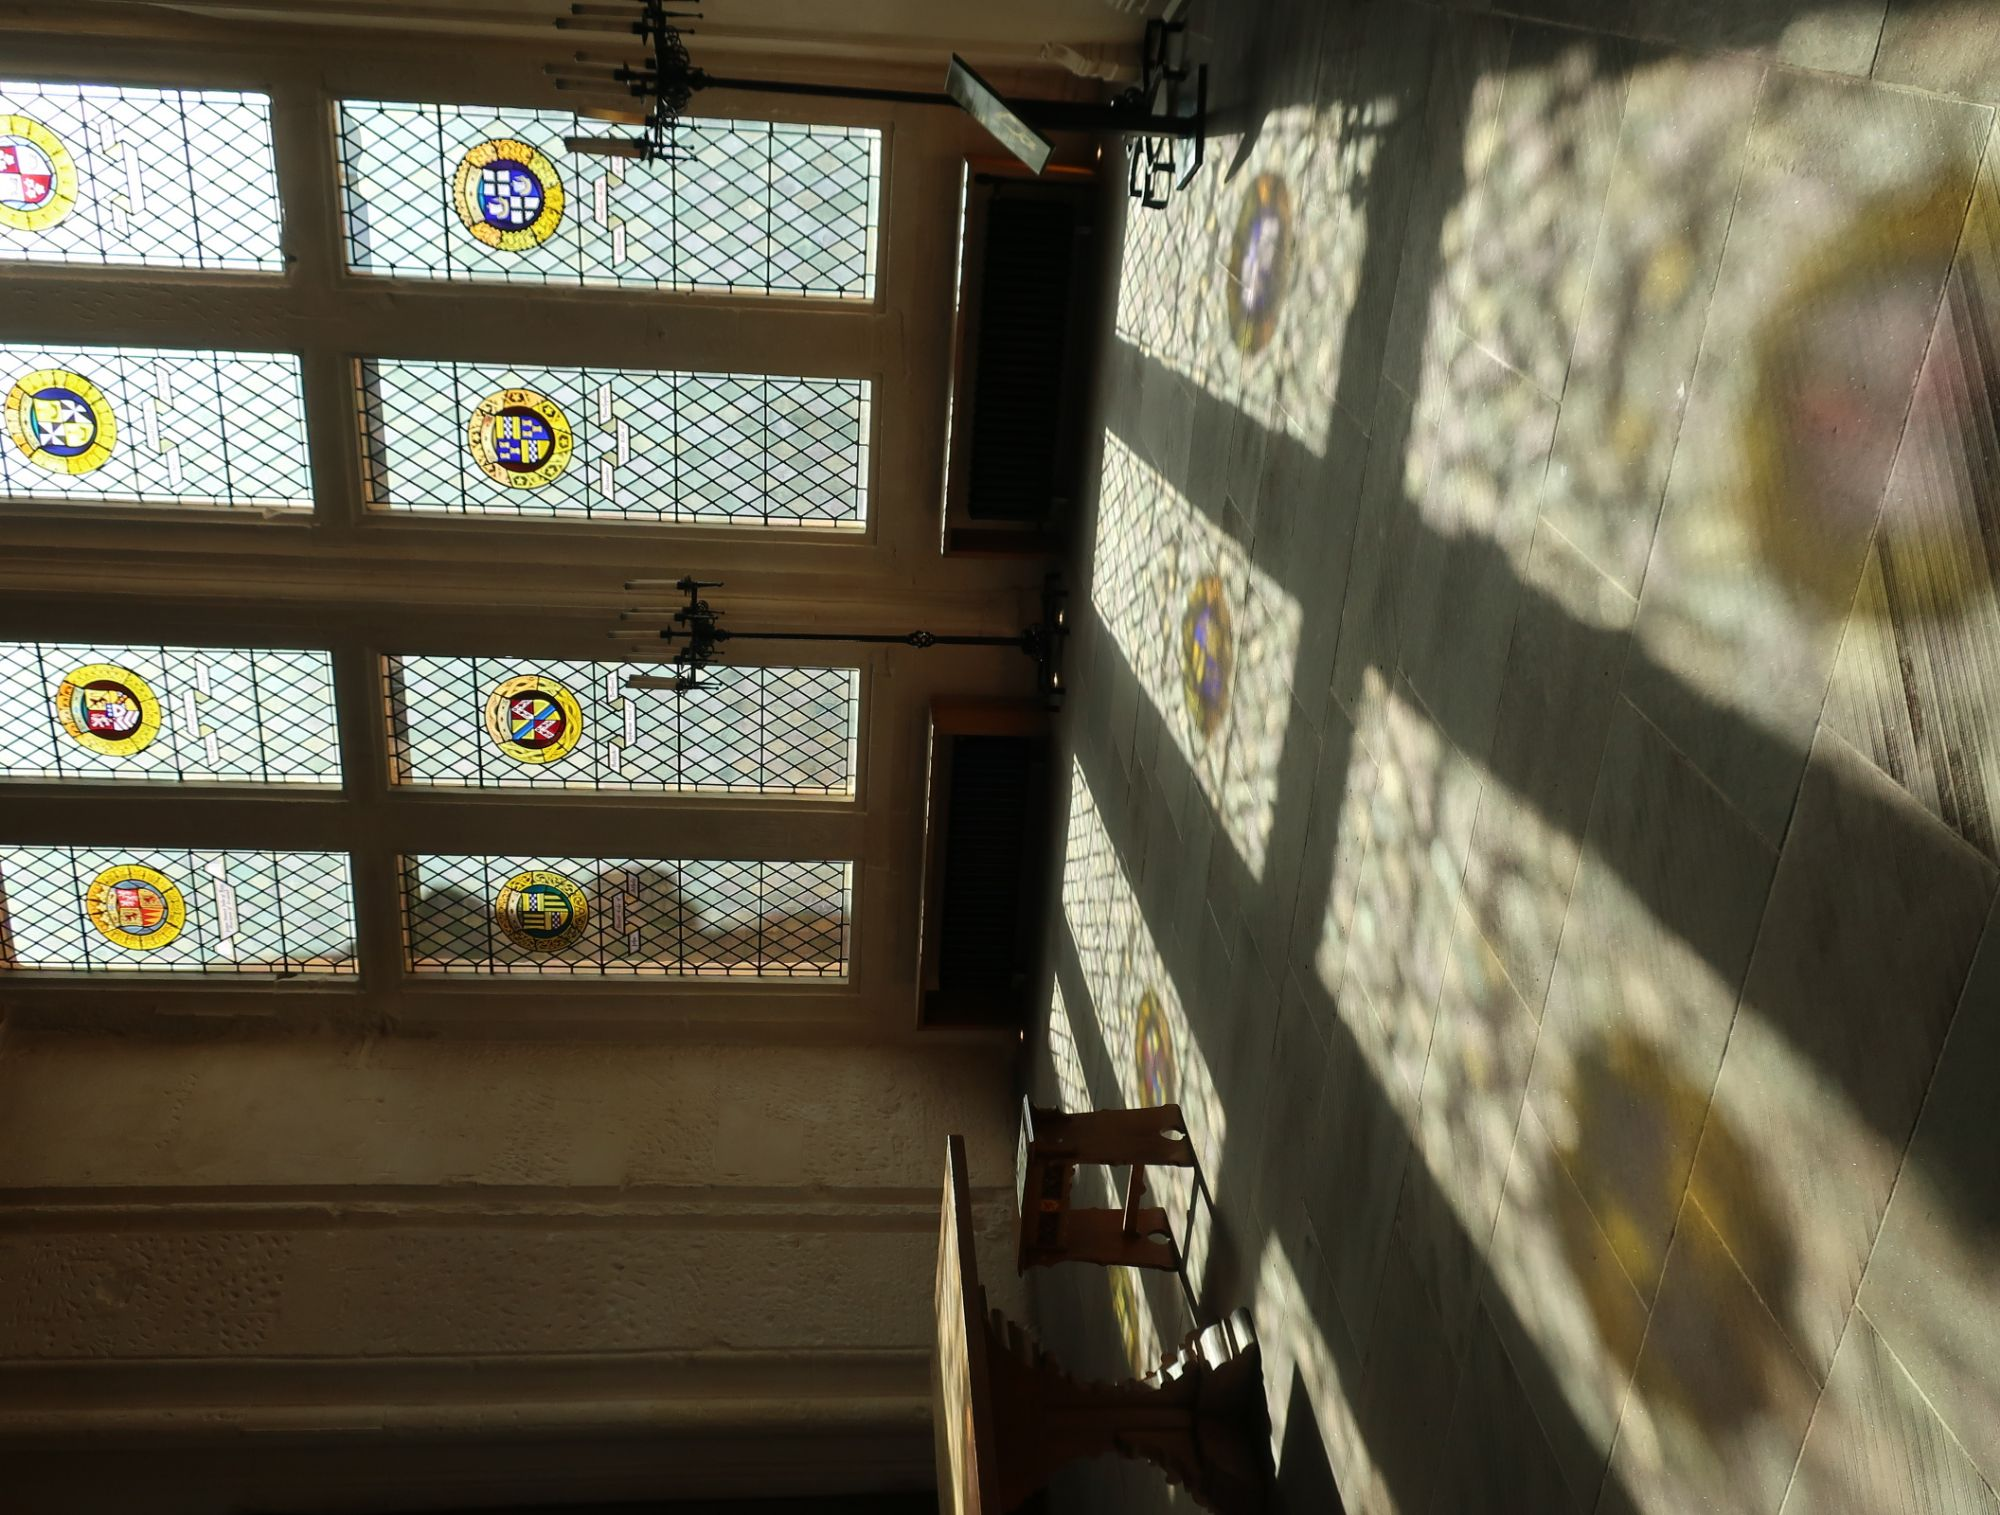 Stain glass in the castle